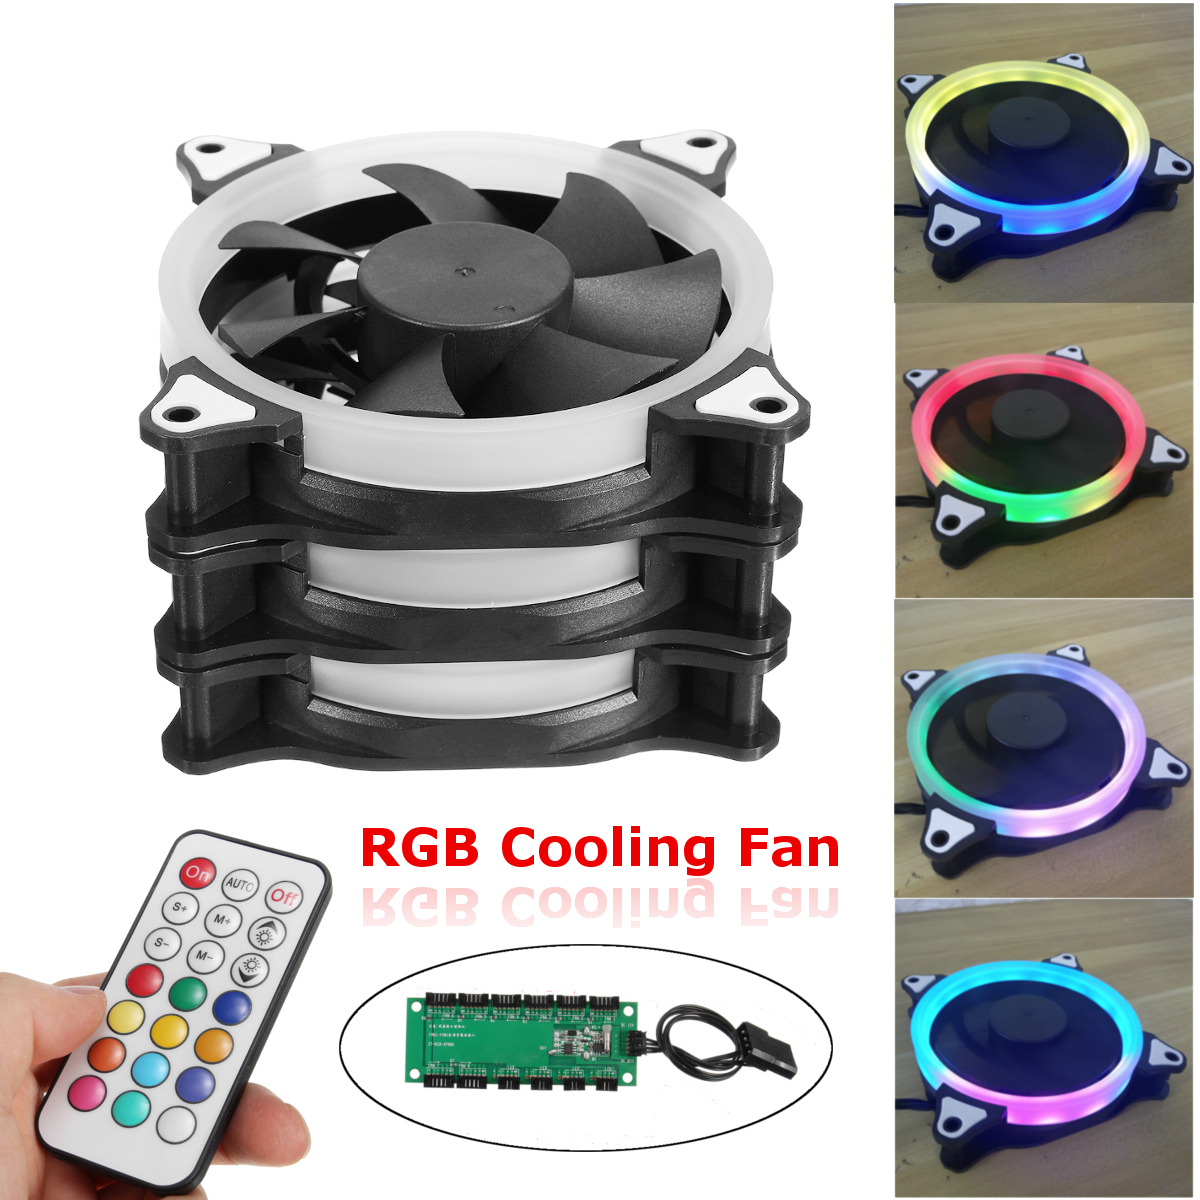 3-Pack 120mm LED Computer Case PC Cooling Fan Radiators RGB Adjustable Cooler For Computer PC Cases +Controller +IR Remote Control